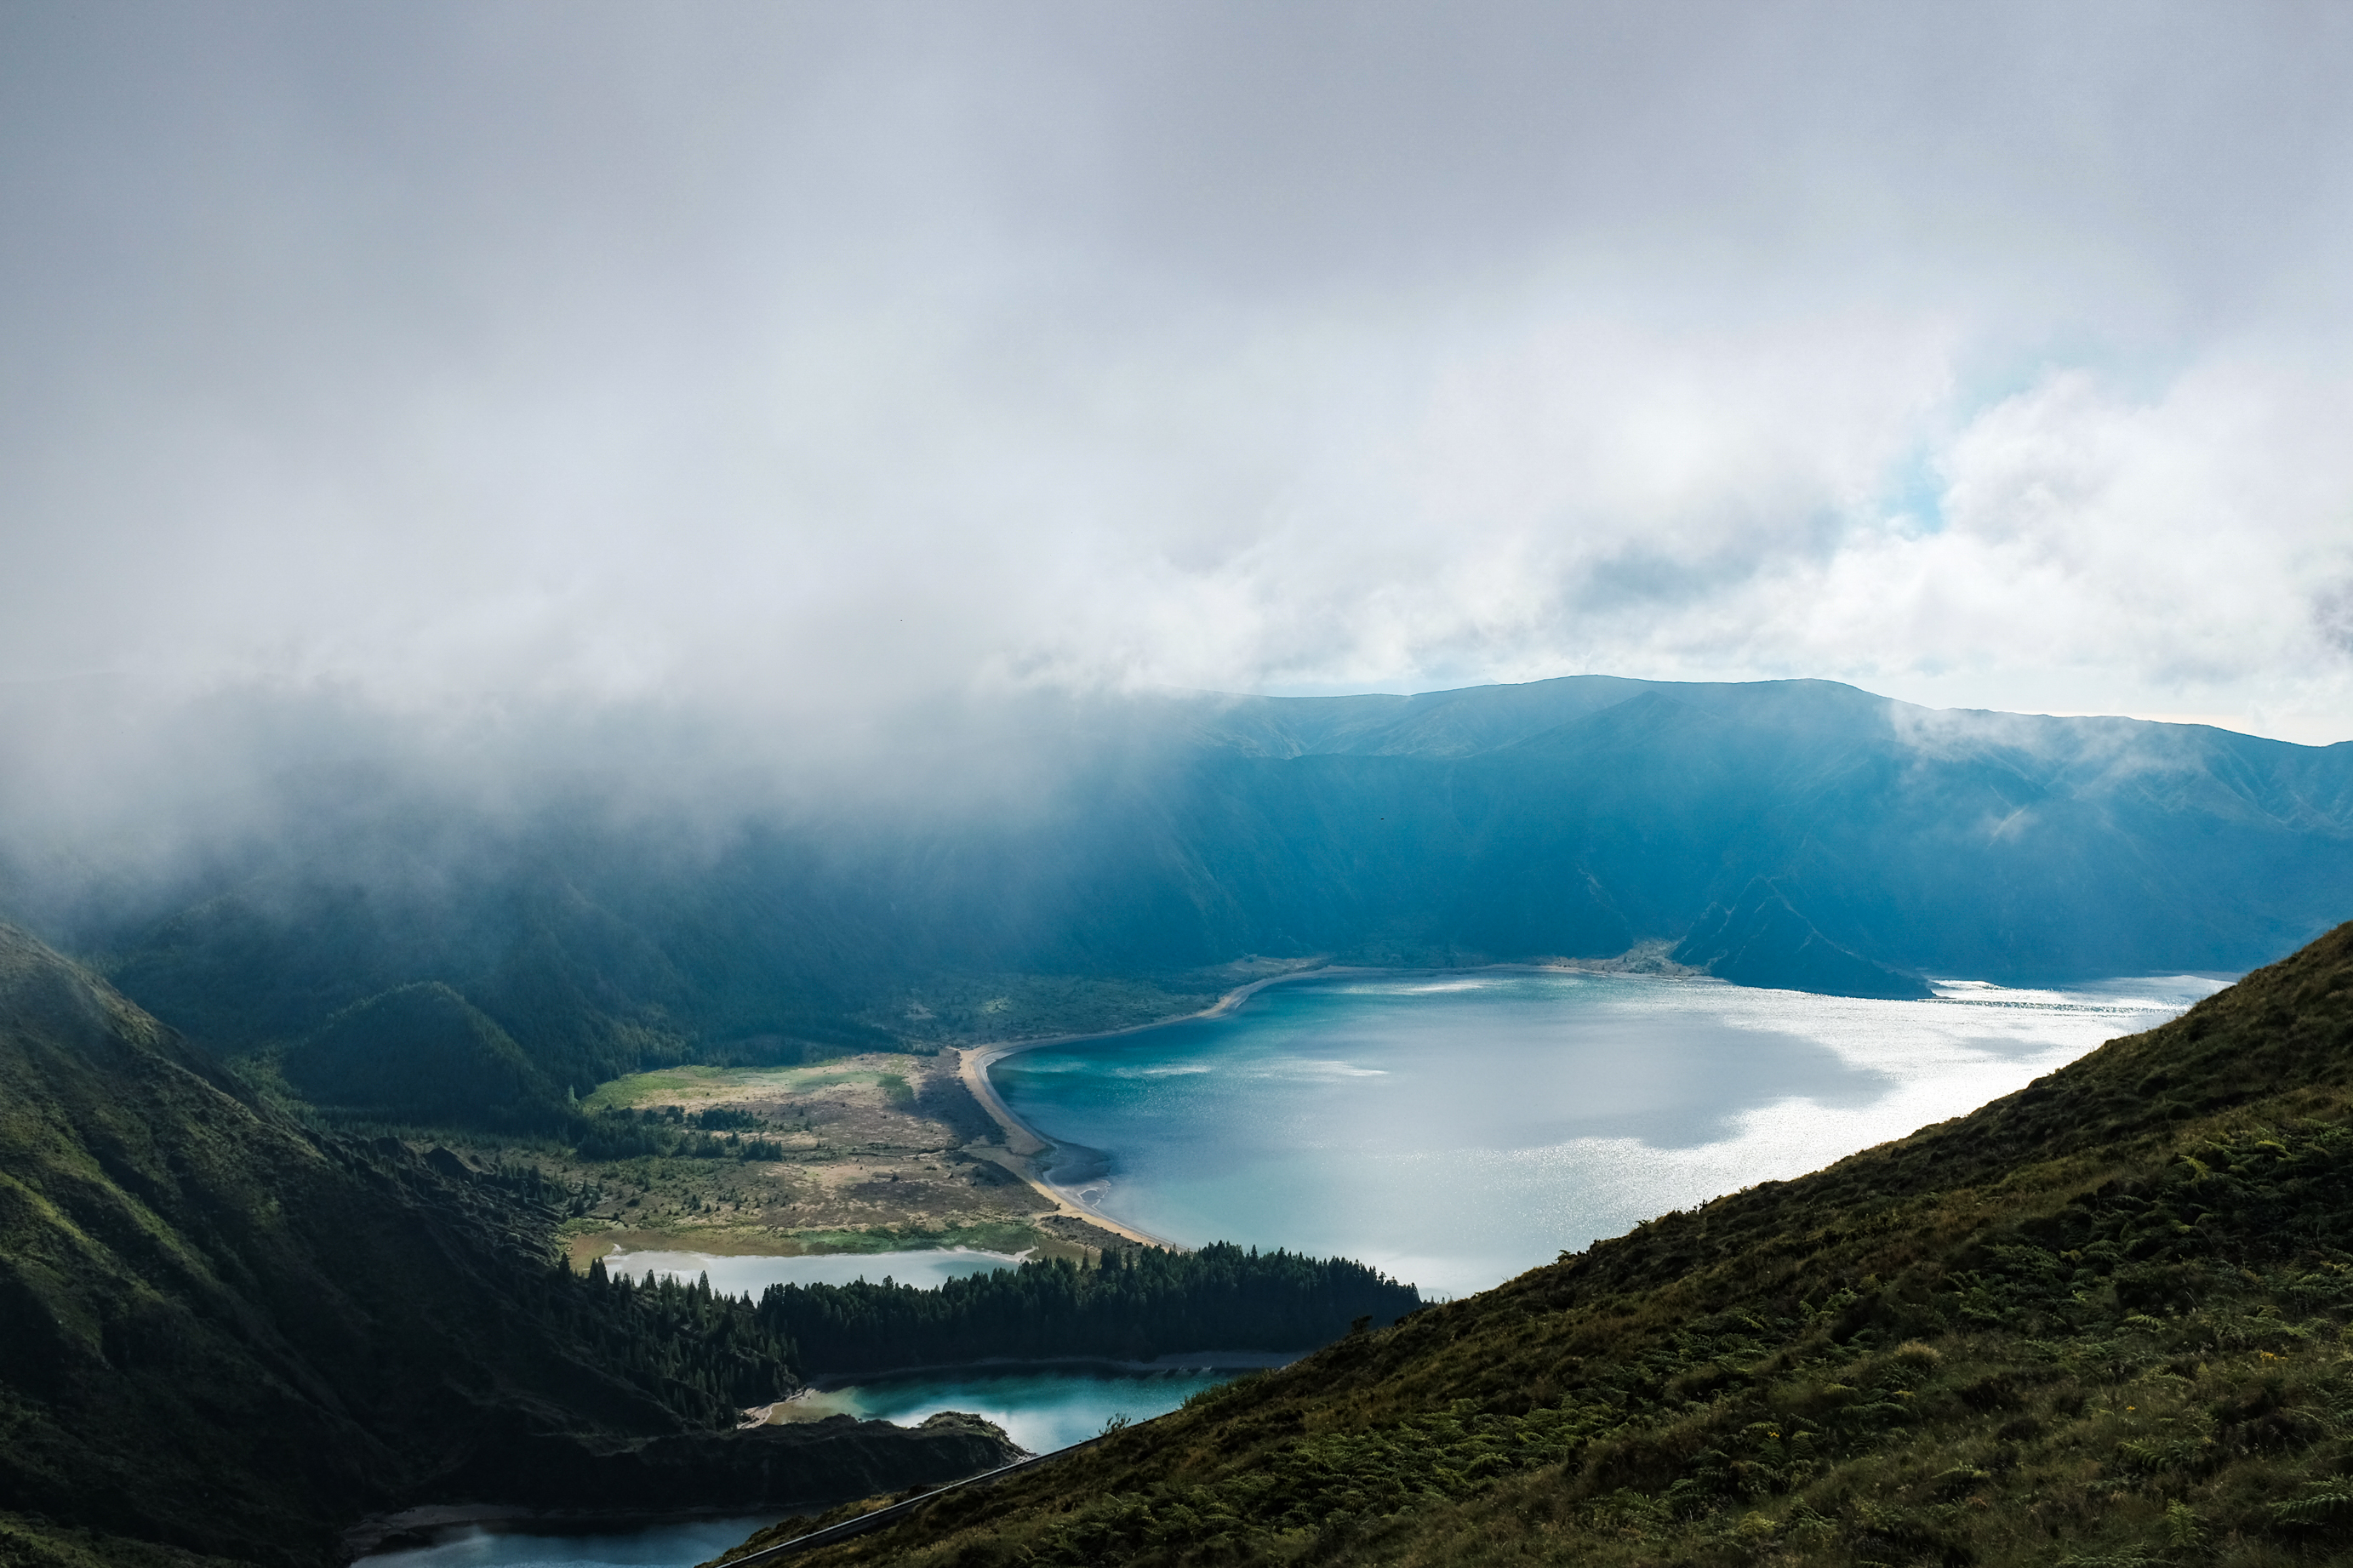 This is one of the biggest lakes in the island of São Miguel in Azores. The view is just breathtaking, it makes you feel like you're in Jurassic Park. Every time I go visit the Island I always make a stop there, I love the feeling it gives.